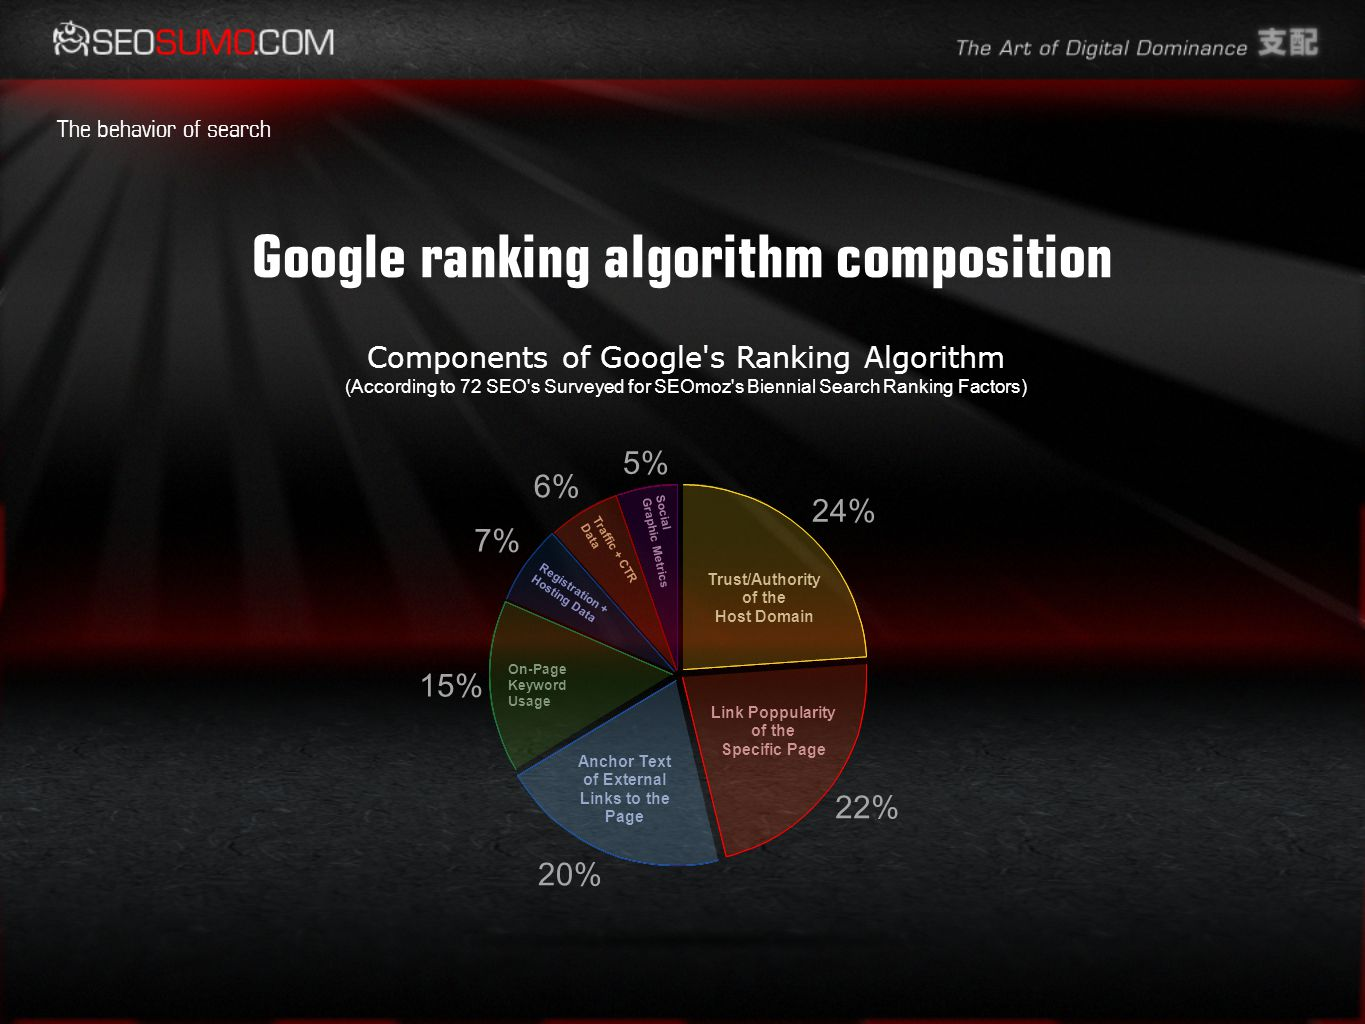 Google ranking algorithm composition The behavior of search Components of Google s Ranking Algorithm (According to 72 SEO s Surveyed for SEOmoz s Biennial Search Ranking Factors) 5% 6% 7% 15% 20% 22% 24% Social Graphic Metrics Traffic + CTR Data Registration + Hosting Data On-Page Keyword Usage Anchor Text of External Links to the Page Link Poppularity of the Specific Page Trust/Authority of the Host Domain